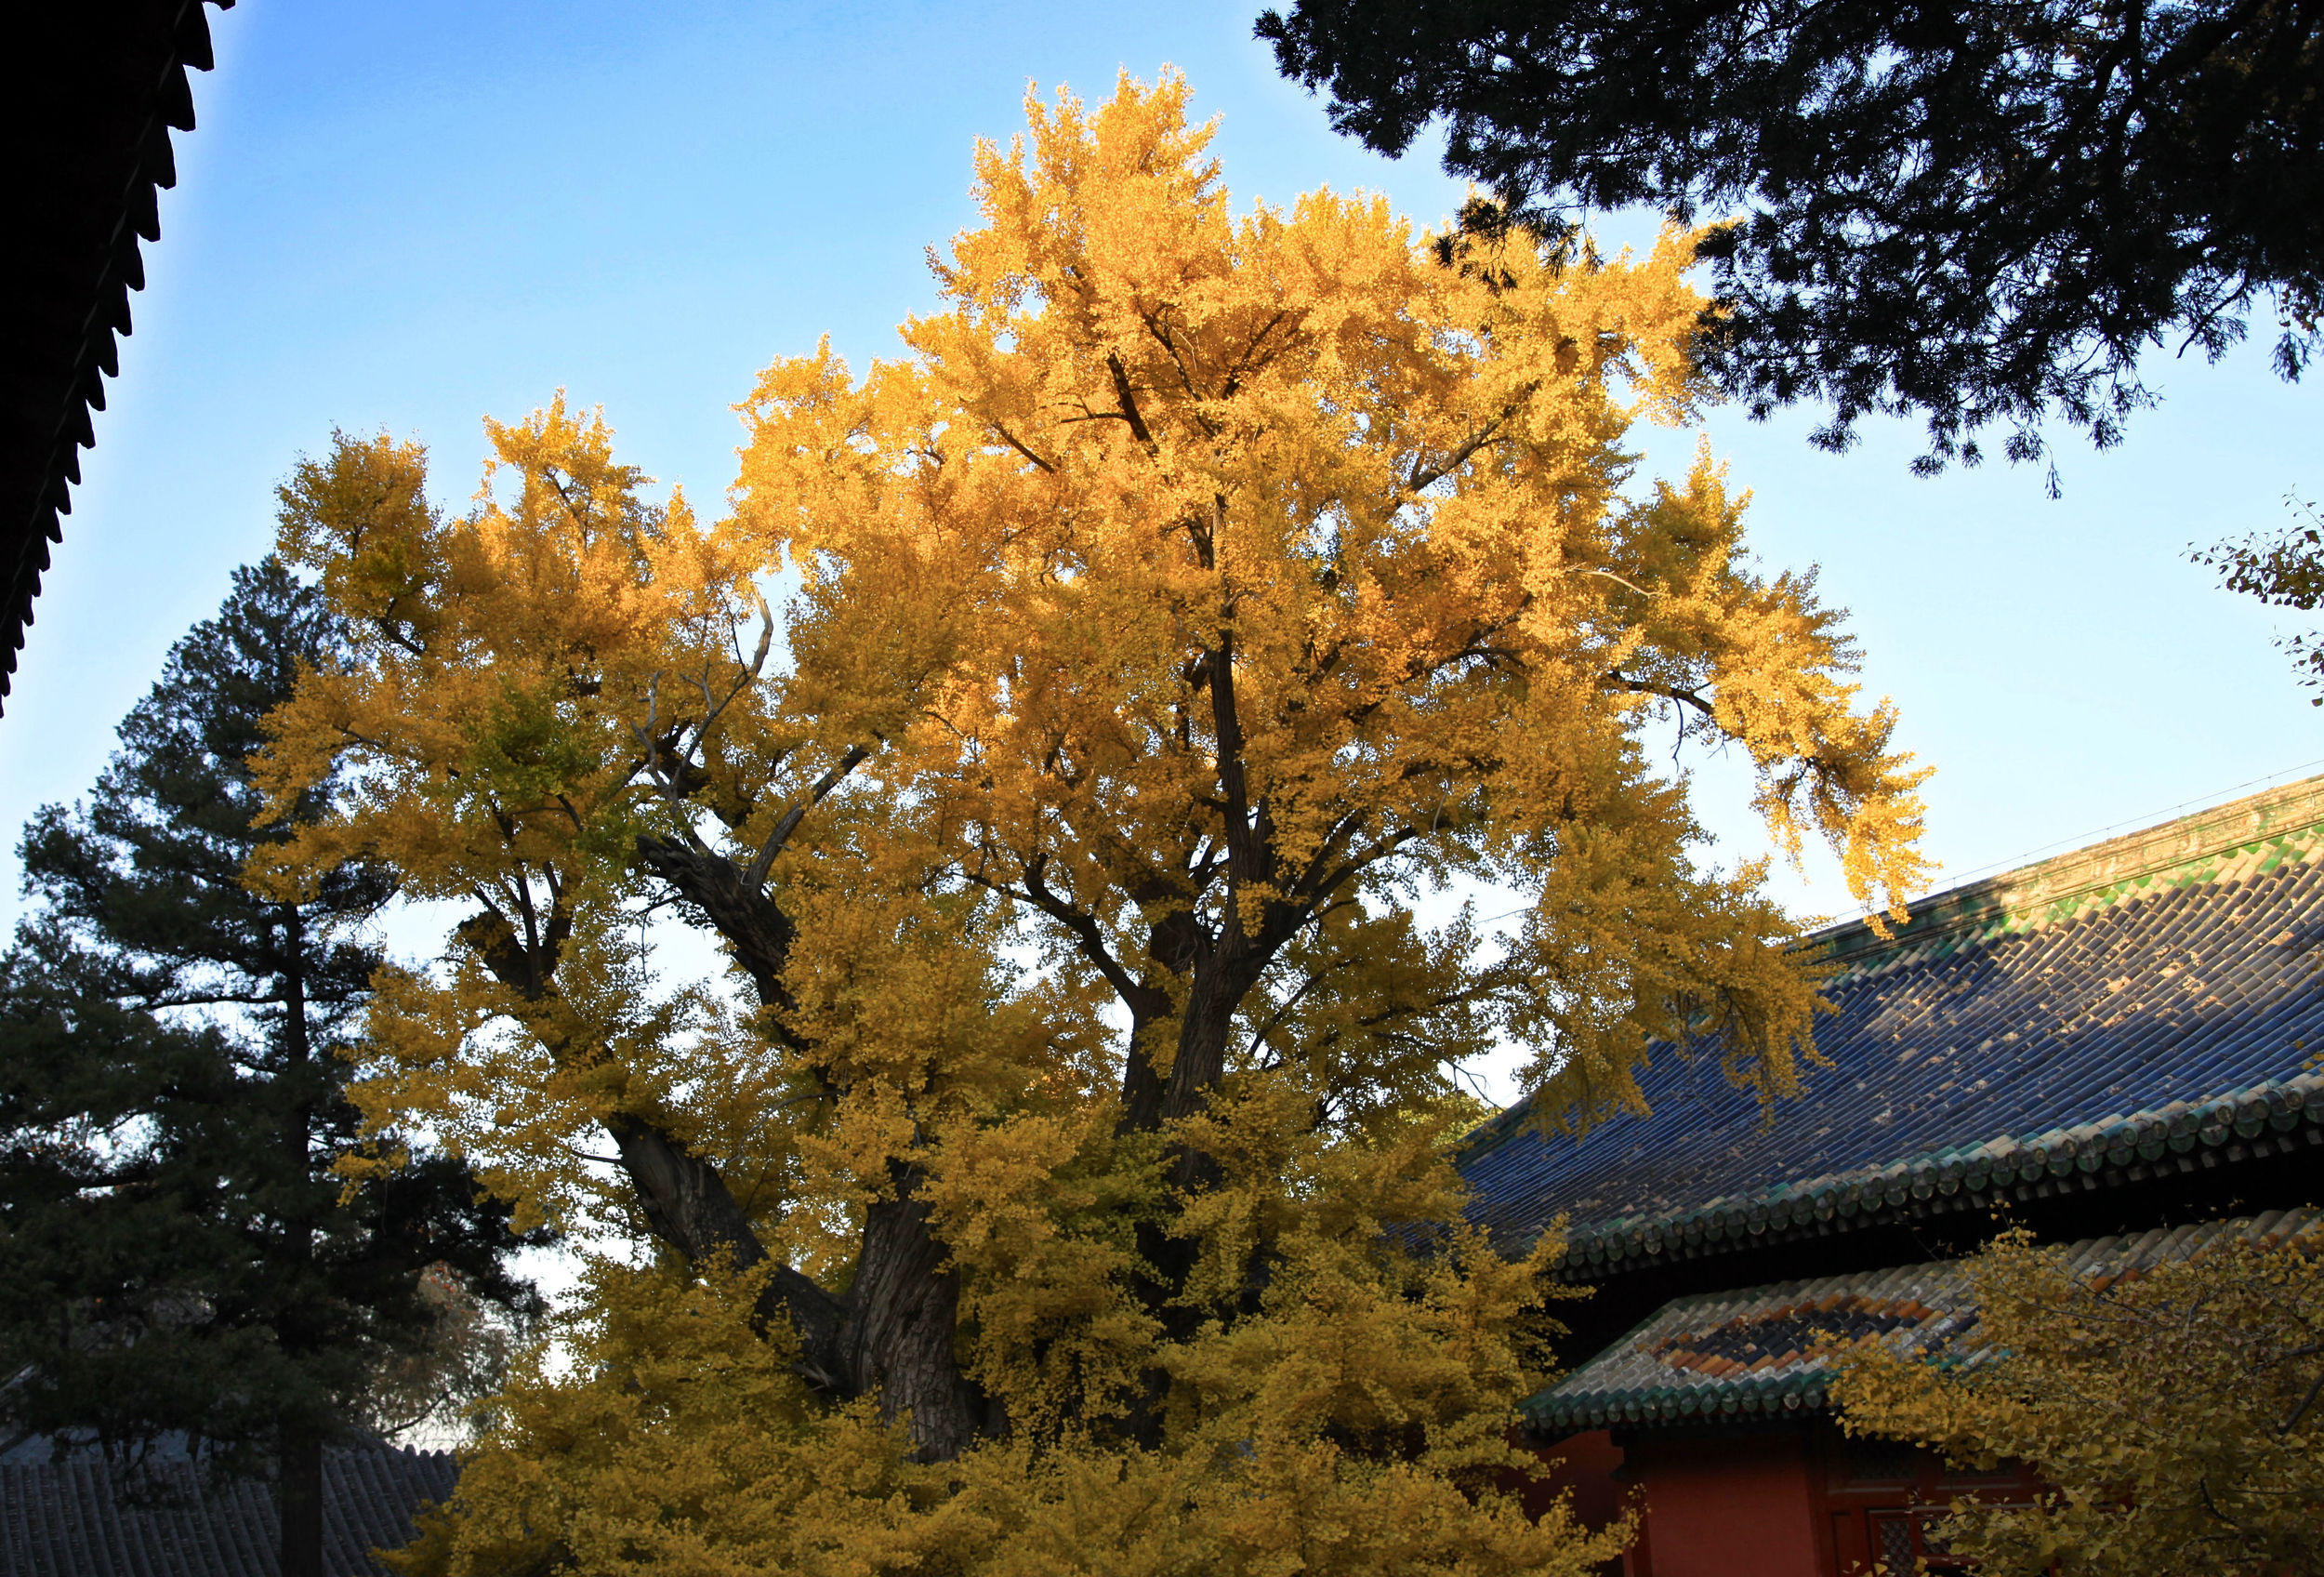 The 1,000 year-old Ginko tree at Dajue Temple,   which Freeman-Mitford must have known and loved.